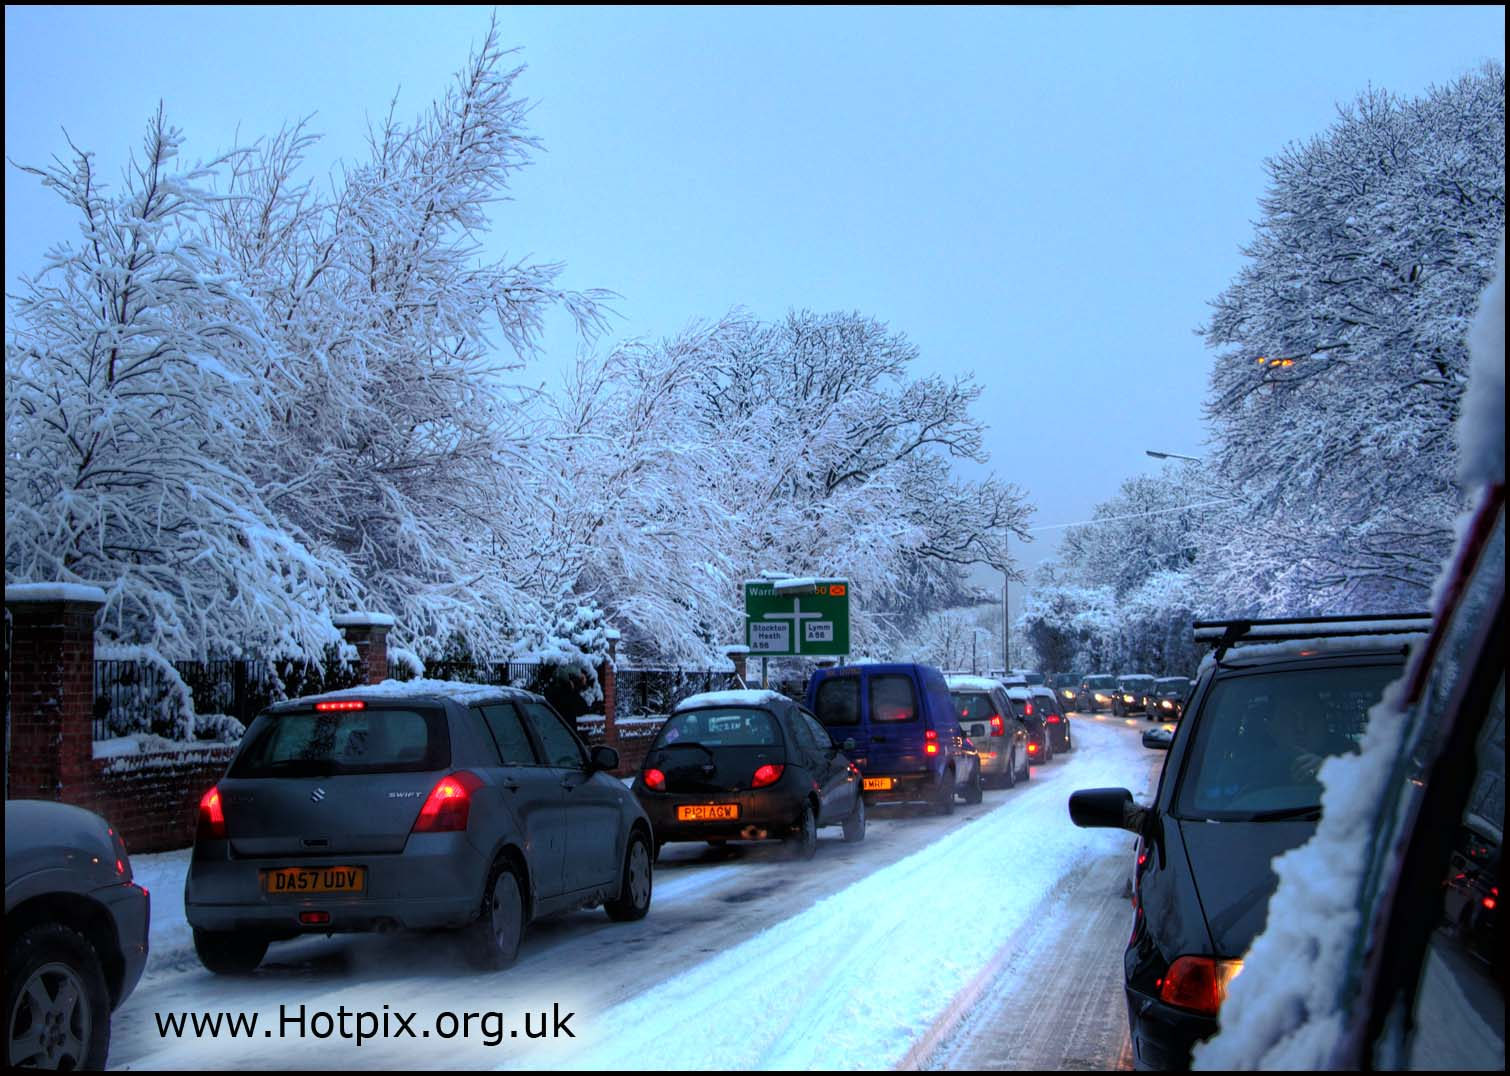 cars,traffic,chaos,ungritted,road,A50,Grappenhall,Warrington,Cheshire,UK,snow,frosty,frosted,frost,jam,white,out,whiteout,england,\u96ea,sneeuw,neige,Schnee,\u0441\u043d\u0435\u0436\u043e\u043a,nieve,blue,cyan,ice,icy,winter,HDR,high dynamic range,Hotpicks,hotpics,hot,pics,pix,picks,highway,hotpix.freeserve.co.uk,hotpix!,hotpix.rocketmail.com,hotpixuk.rocketmail.com,contact.tony.smith.gmail.com,tony.smith.gmail.com,tonys@miscs.com,tony.smith@mis-ams.com